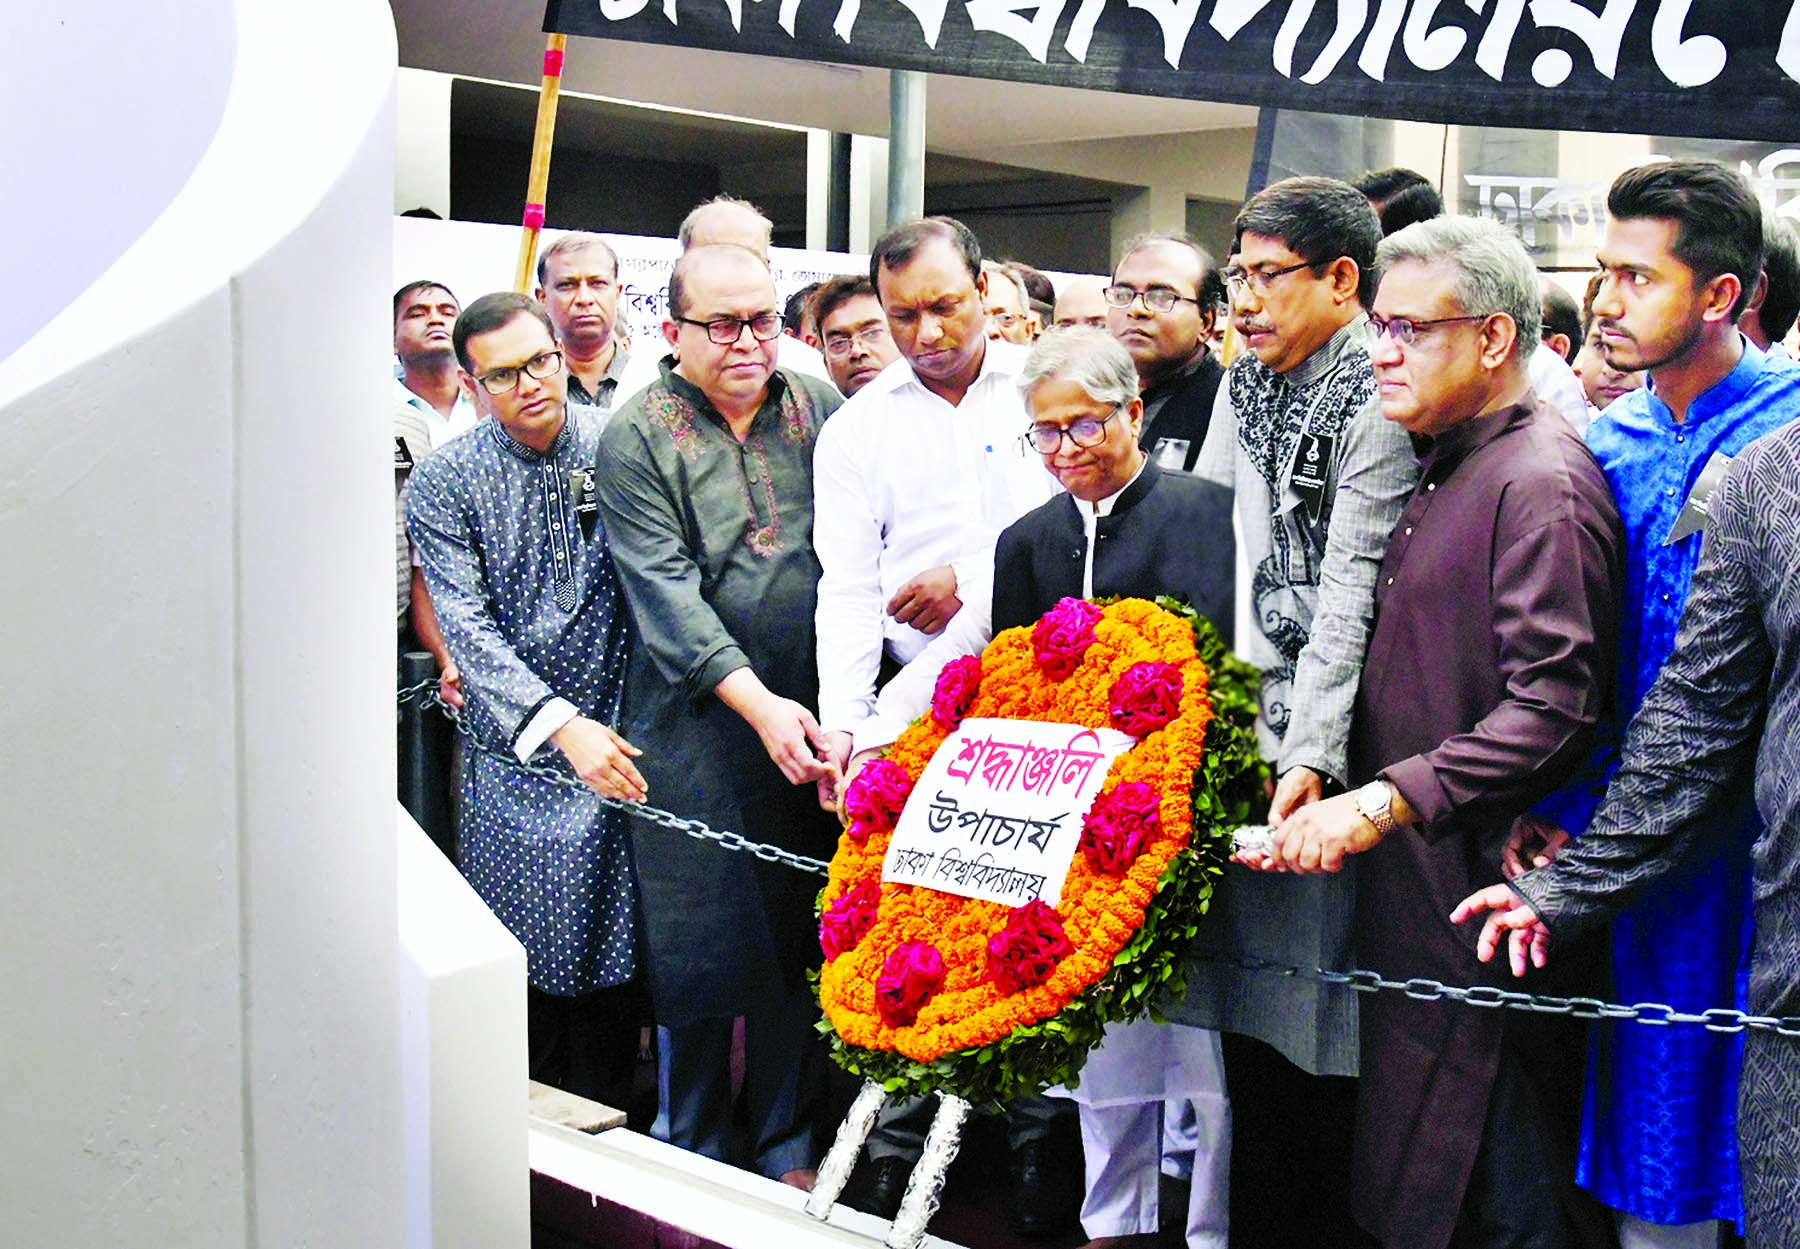 Vice-Chancellor of Dhaka University Prof Dr Akhtaruzzaman placing floral wreaths at Jagannath Hall Memorial Plaque of the university on Tuesday marking Mourning Day of DU.